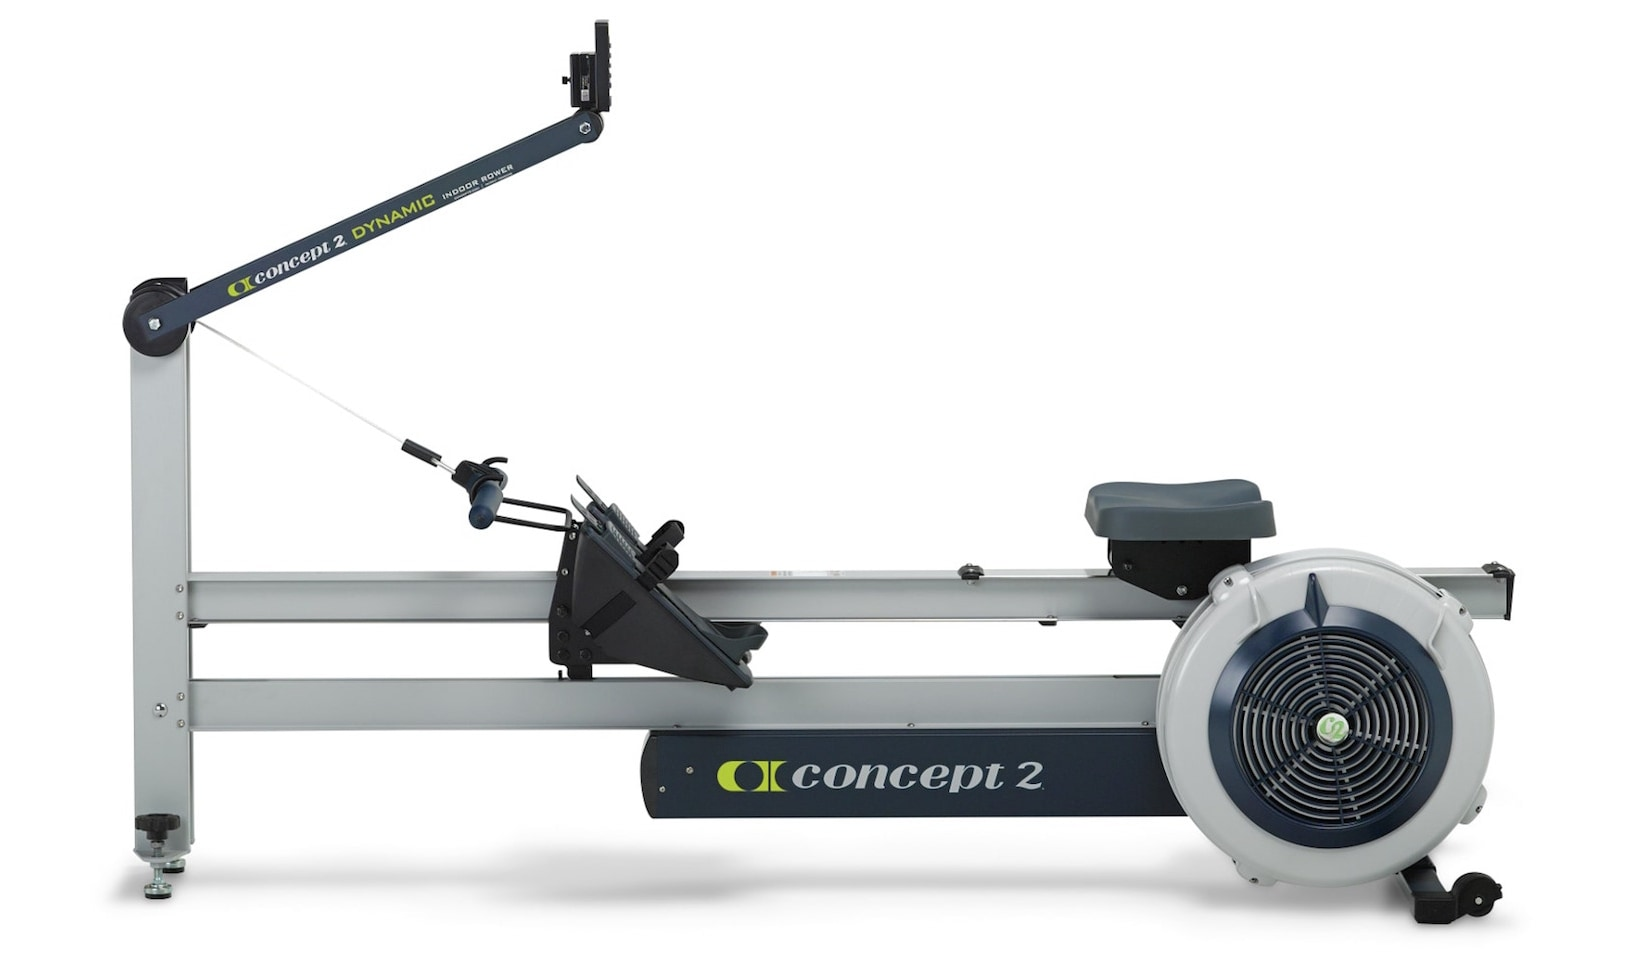 concept 2 indoor rower dynamic indoor rower for athletes amp teams closest rowing 286